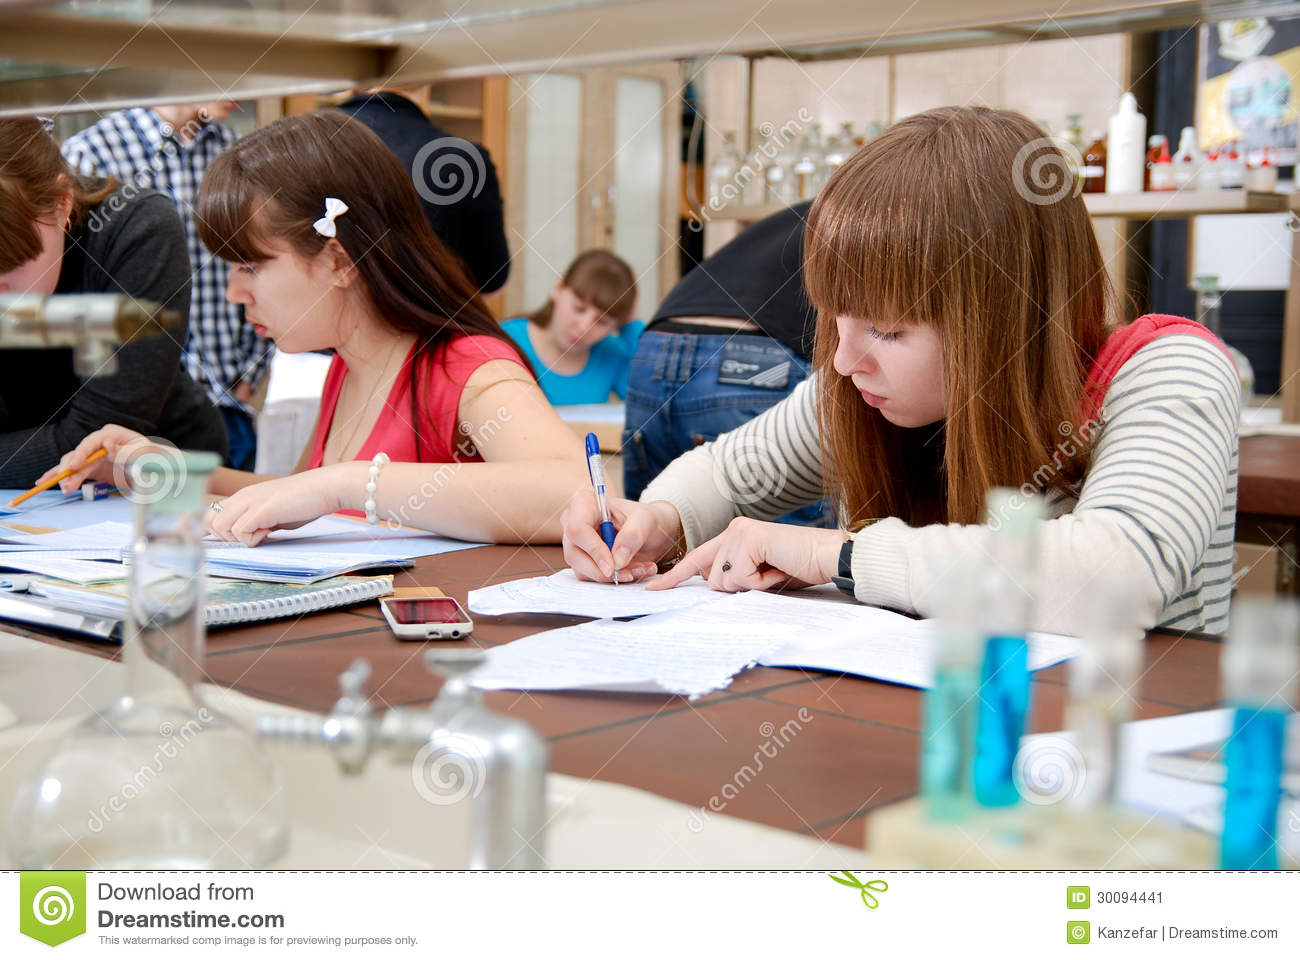 Students at work in the laboratory of chemistry take notes in a